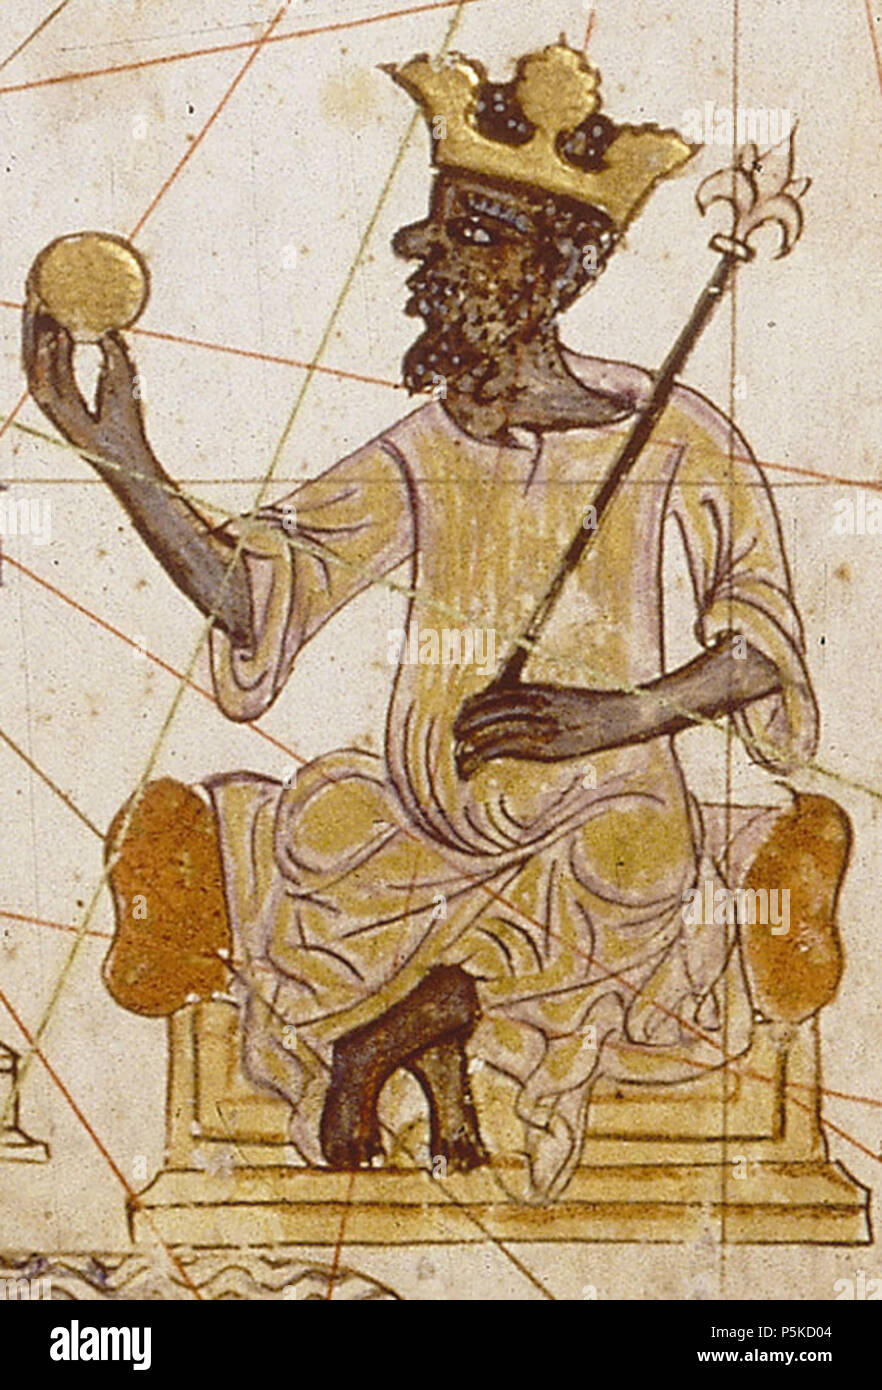 N/A. English: Image of an Saracen king of West Africa, believed to be Mansa Musa, Emperor of Mali. From the Catalan Atlas of 1375, composed by cartographer Abraham Cresques of Majorca. 1375. attrib. Abraham Cresques 65 African king from Catalan Atlas (1375) Stock Photo